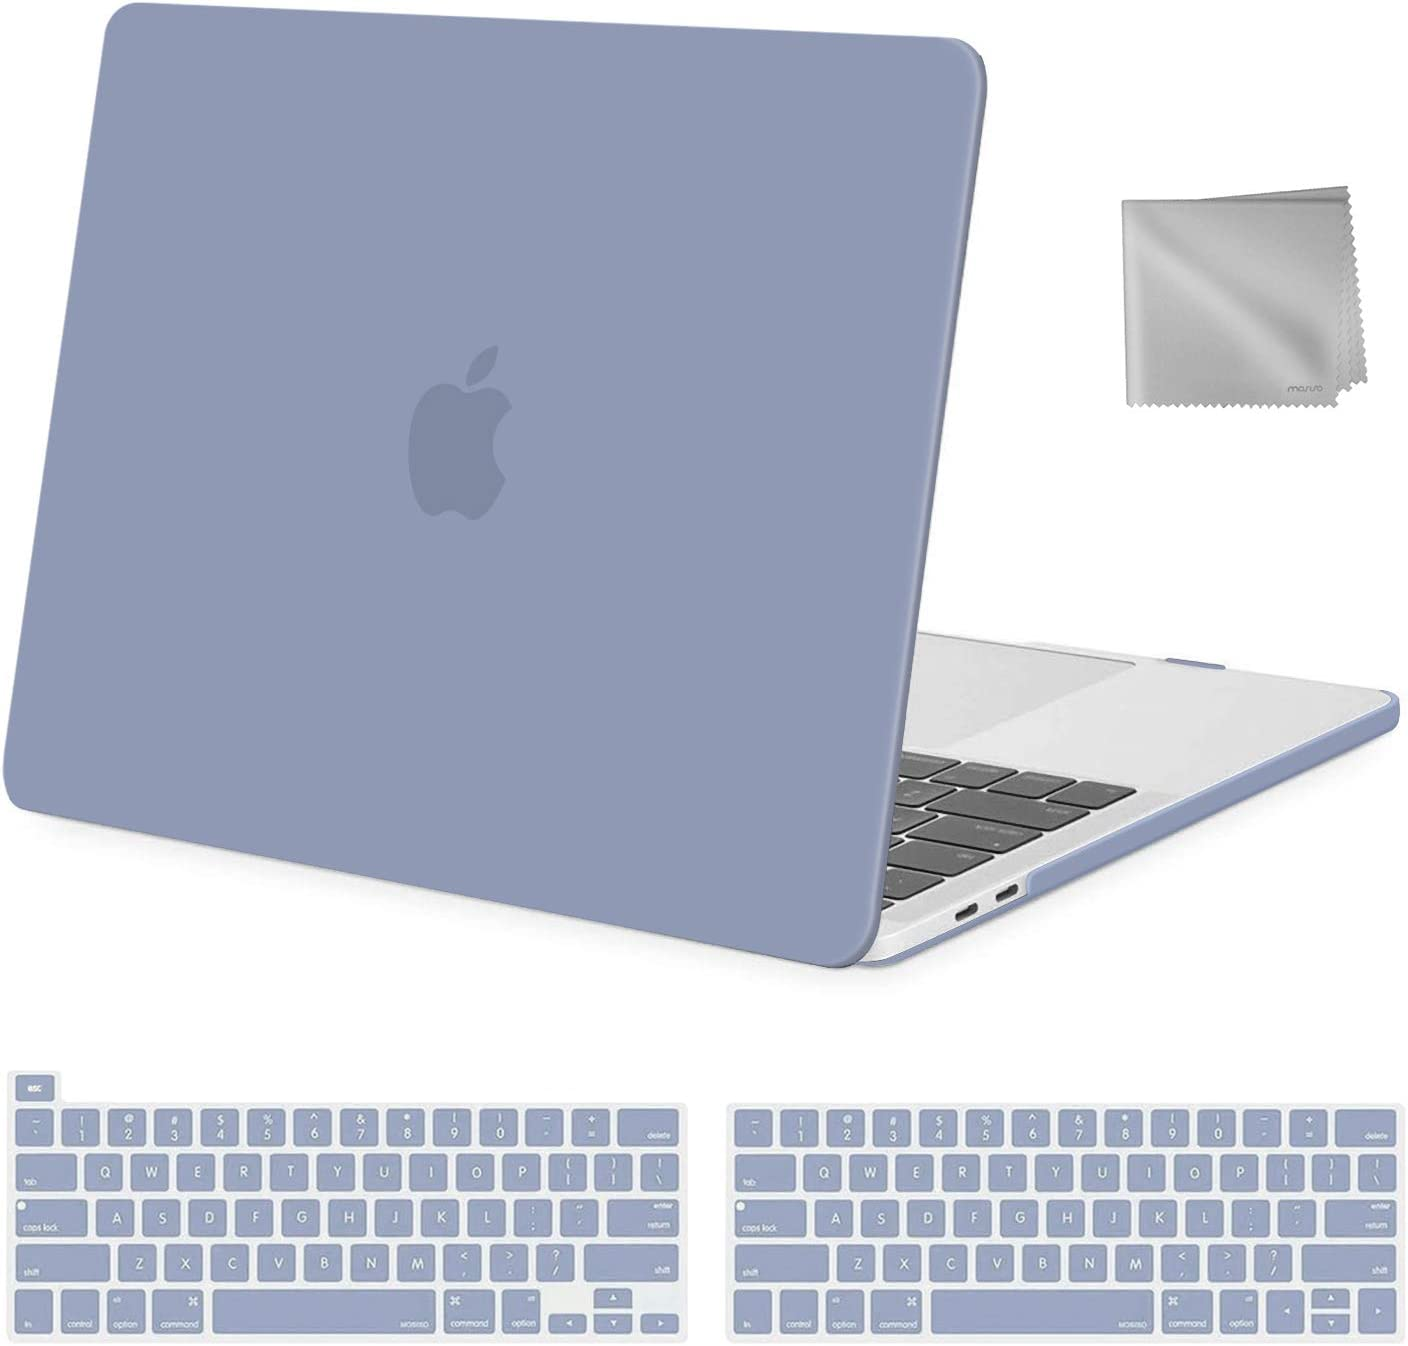 MOSISO MacBook Pro 13 inch Case 2020 2019 2018 2017 2016 Release A2289 A2251 A2159 A1989 A1706 A1708, Plastic Hard Shell&Keyboard Cover&Wipe Cloth Compatible with MacBook Pro 13 inch, Lavender Gray